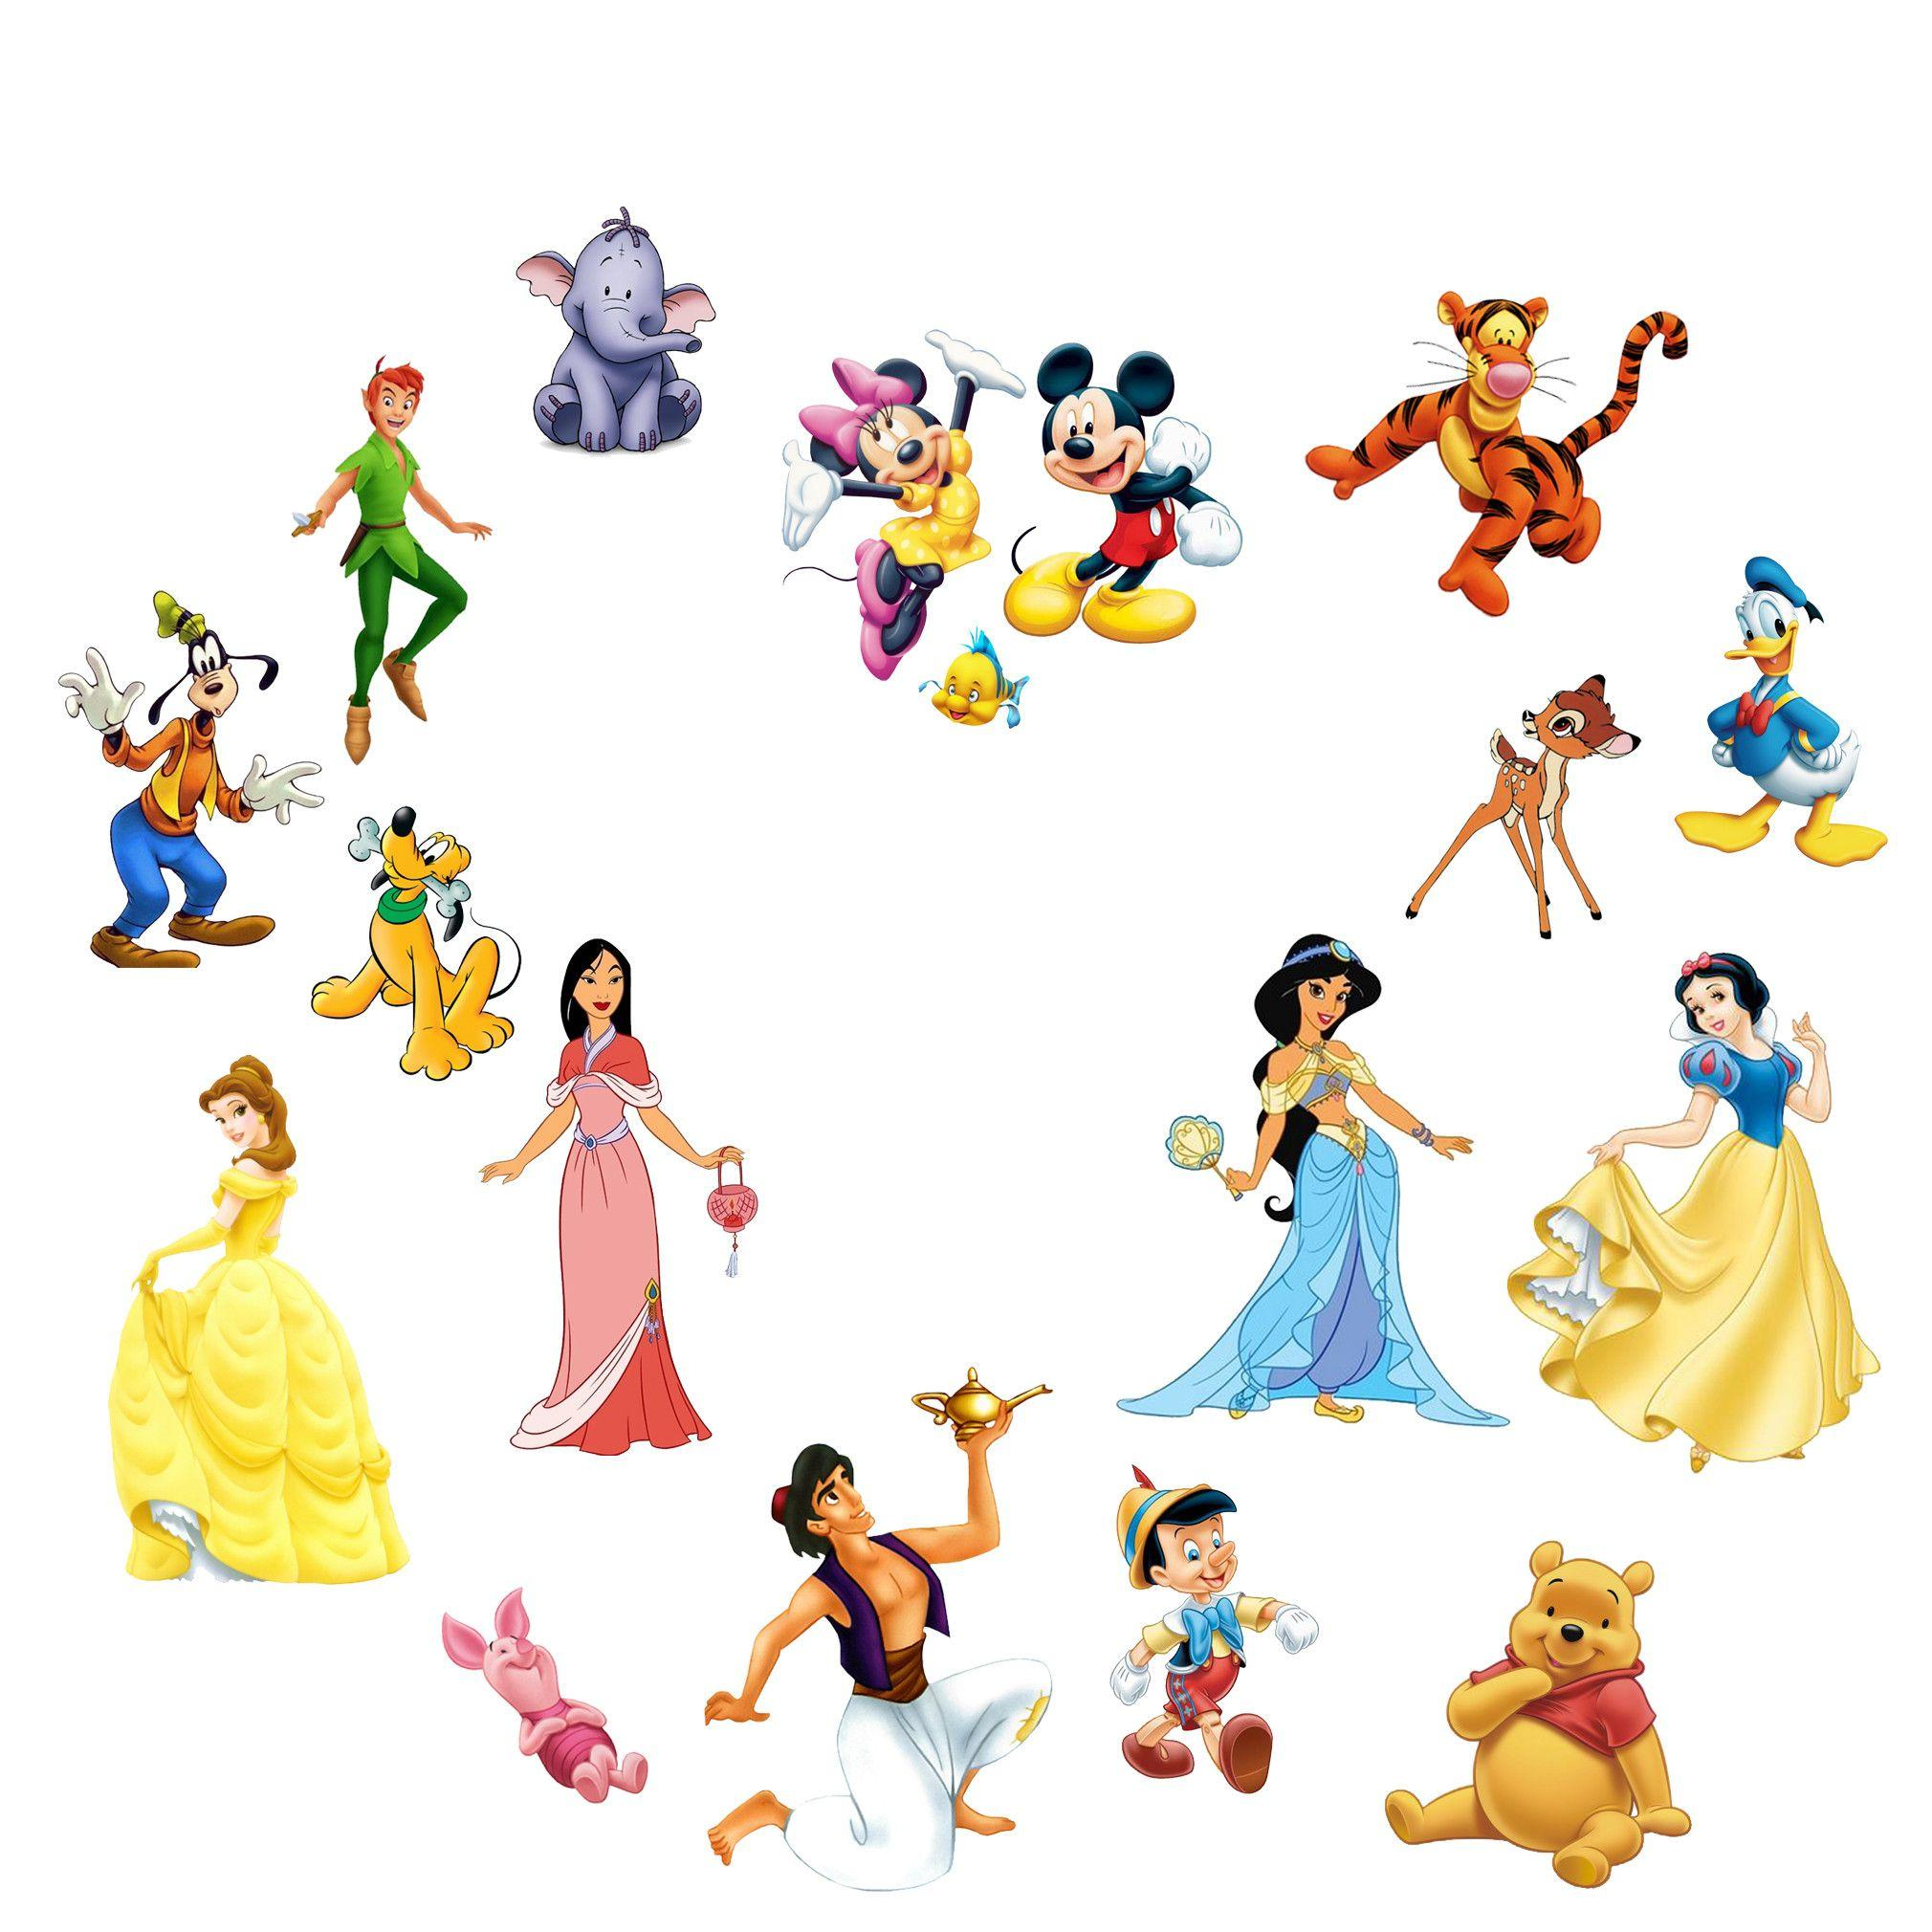 Disney Characters Backgrounds 2020x2020